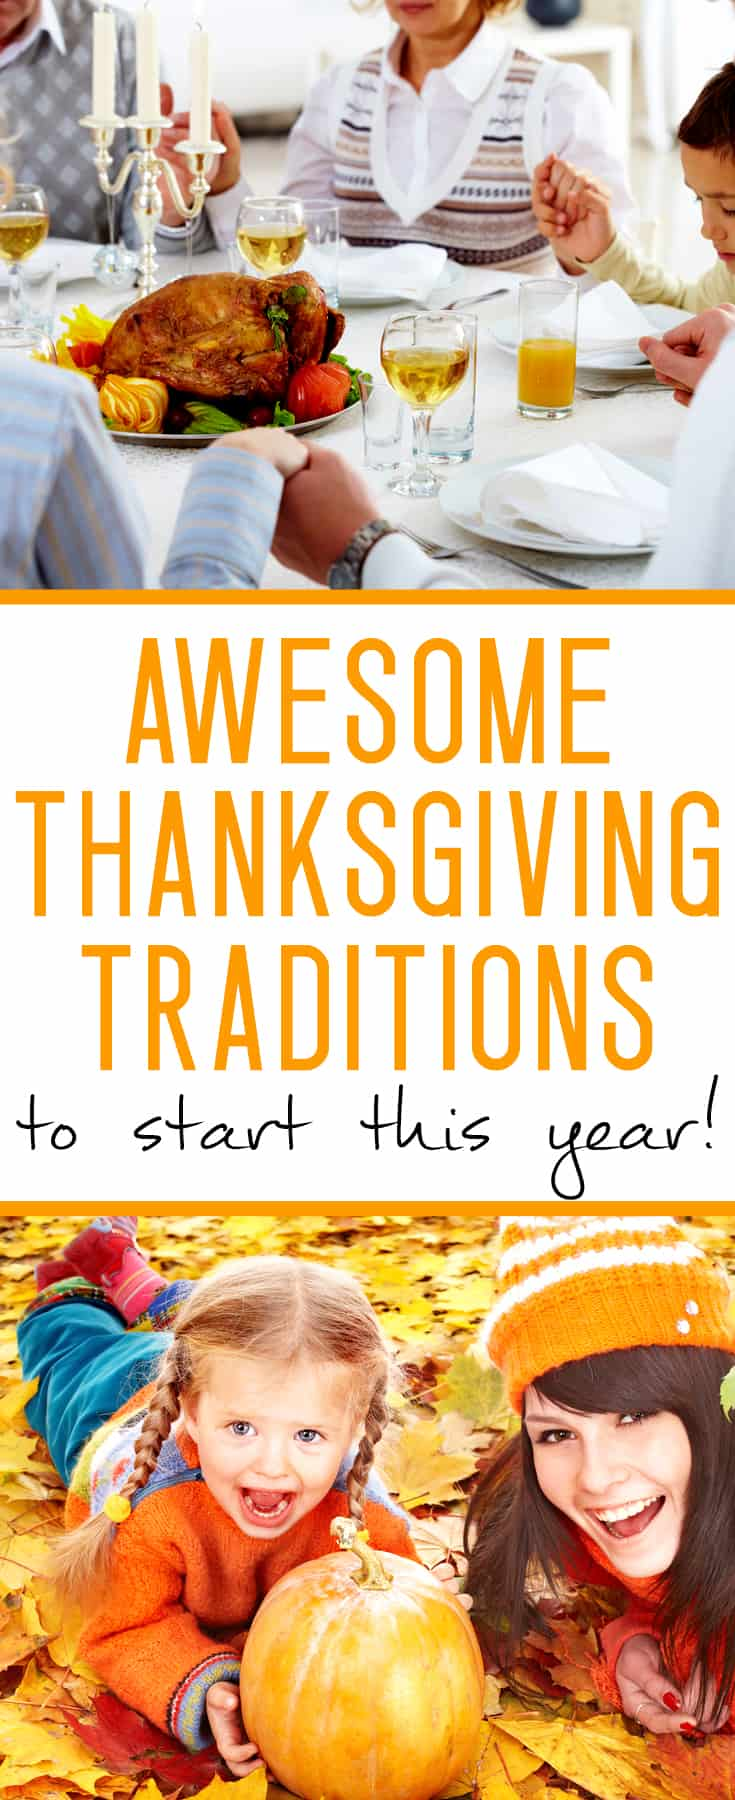 Thanksgiving traditions ideas - traditions are an awesome way to create memories your kids will cherish forever! Try these out this year.